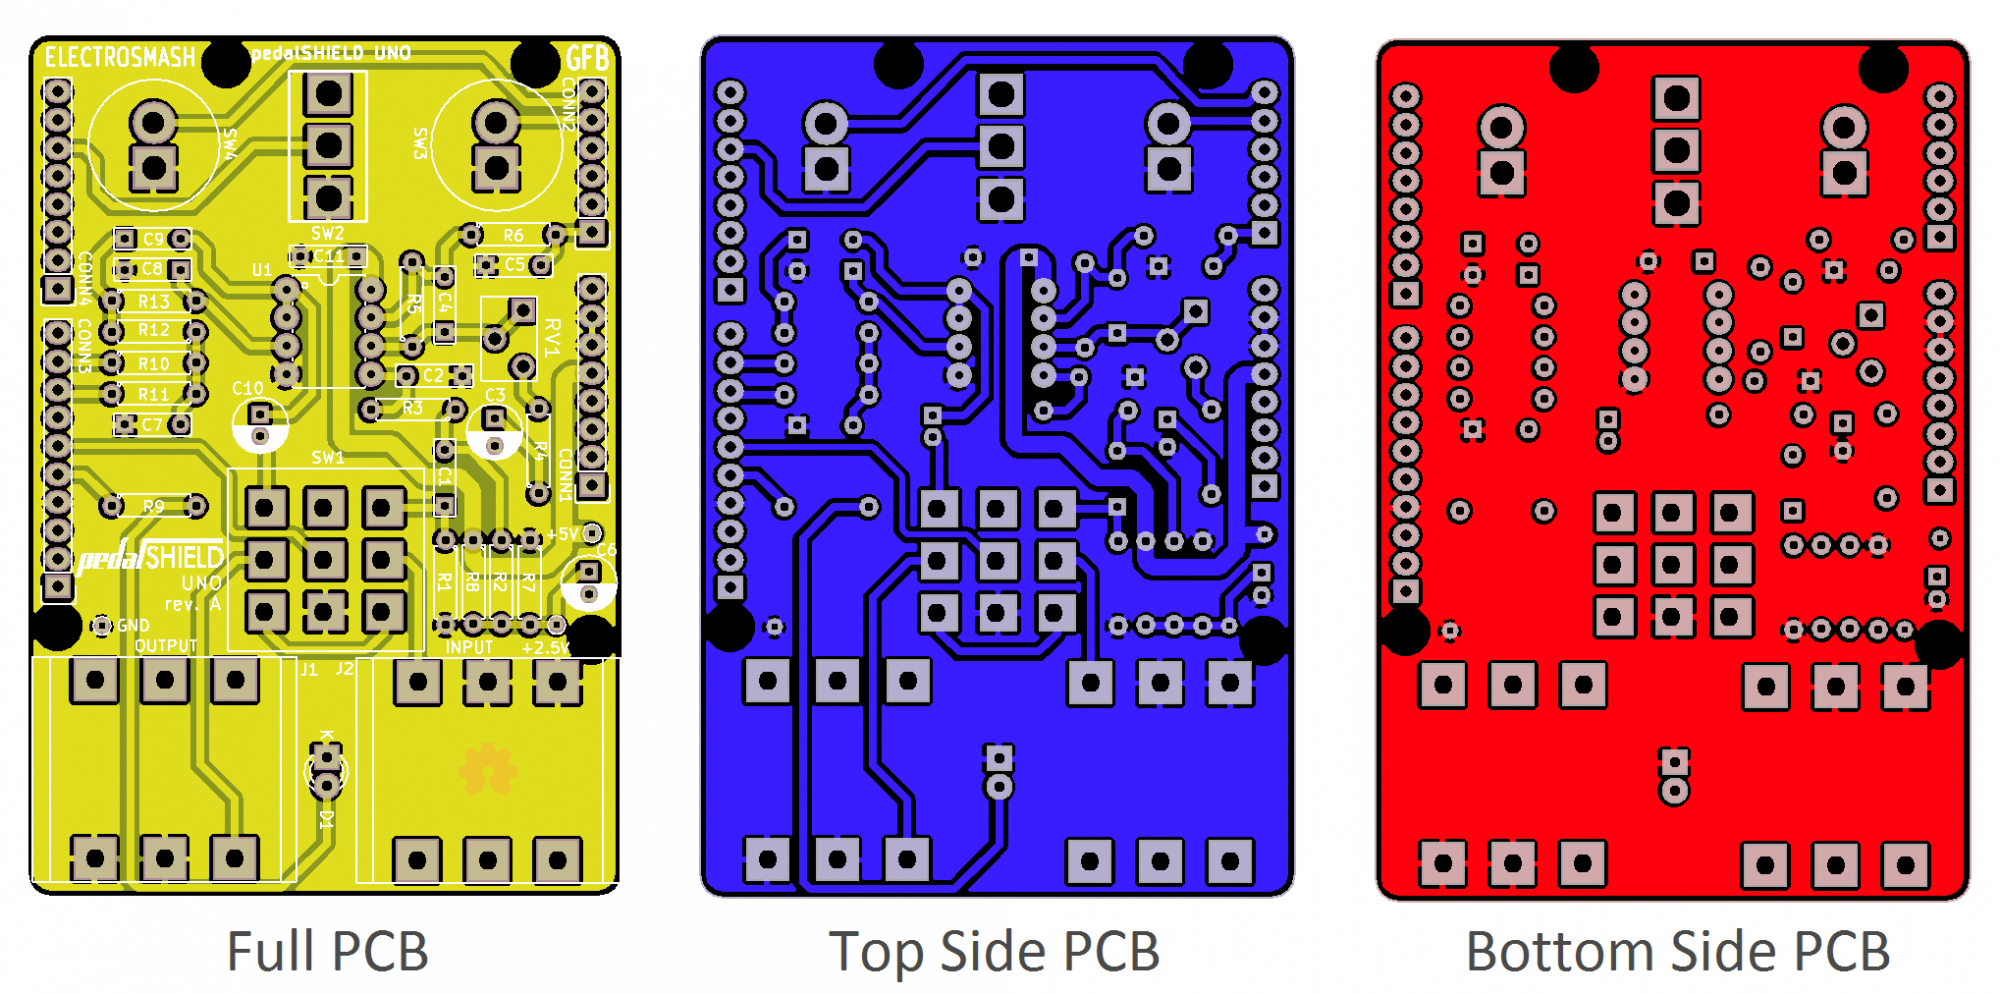 pedalshield-uno-pcb-layers.png